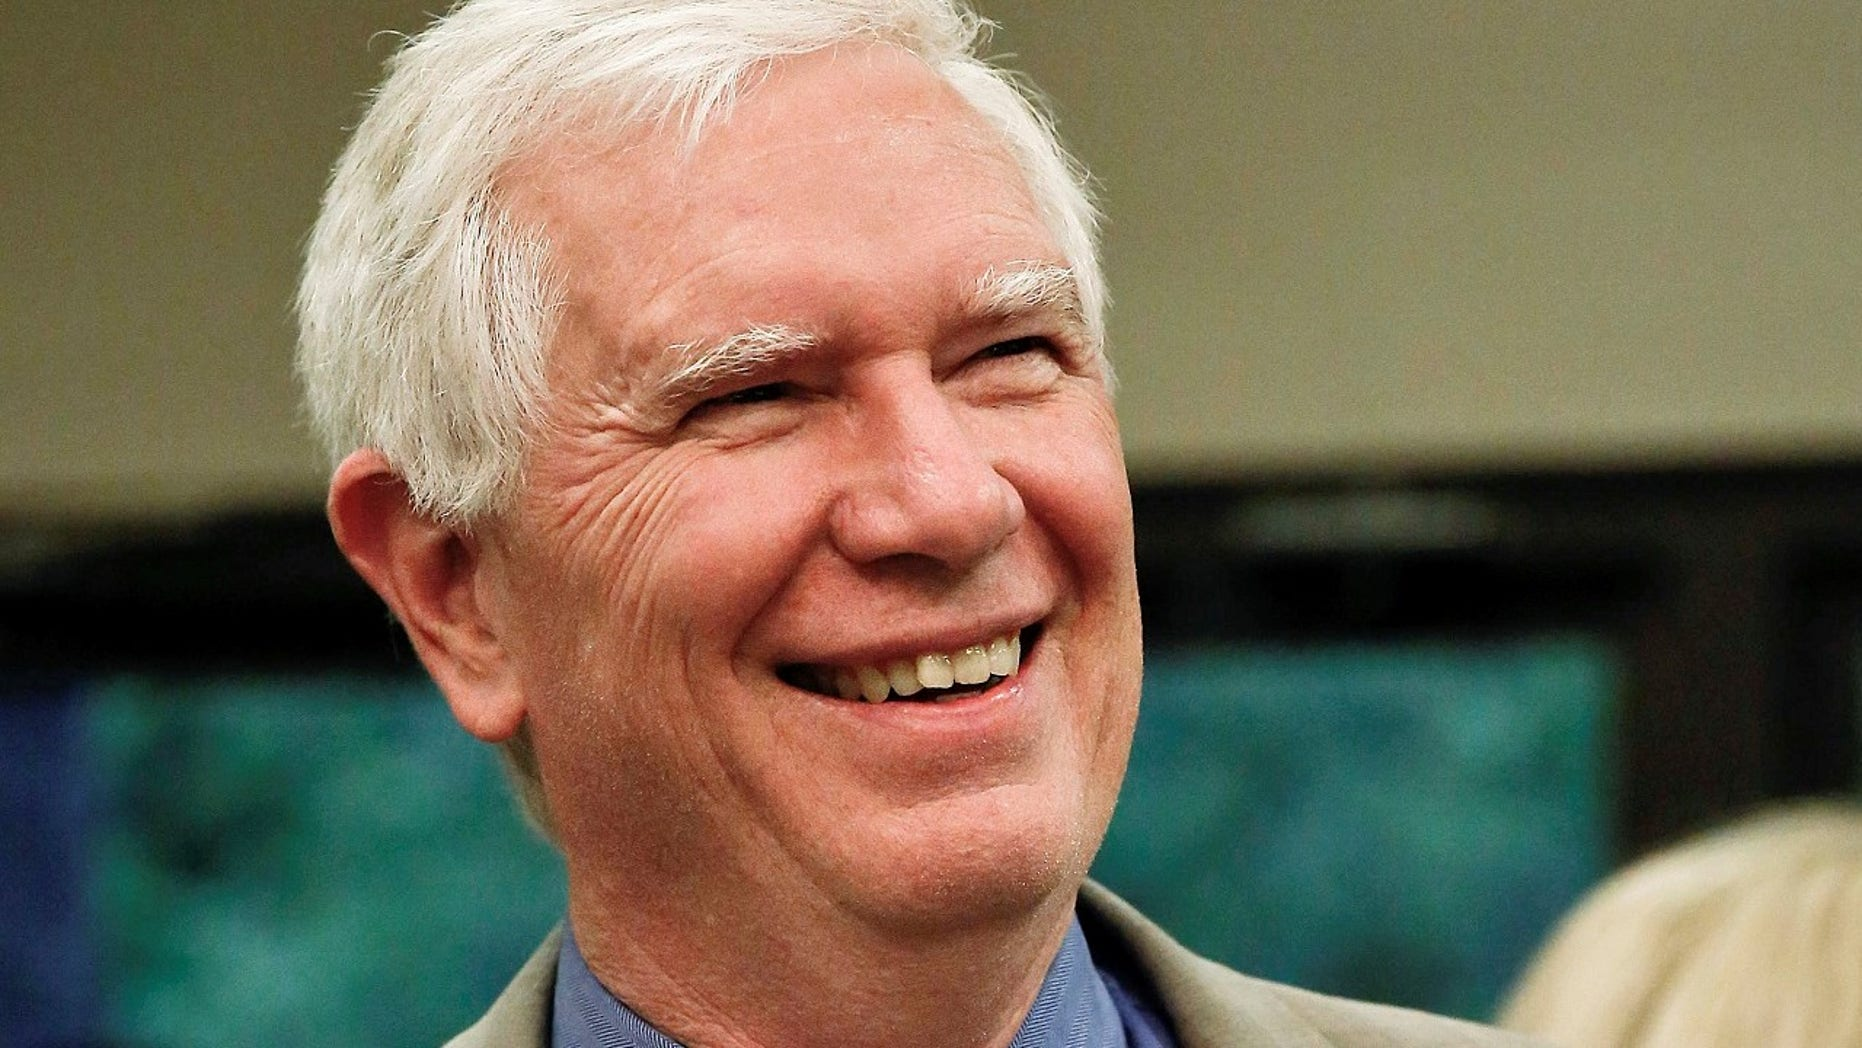 In a speech on the House floor, Rep. Mo Brooks, R-Ala.,  revealed that he has prostate cancer.